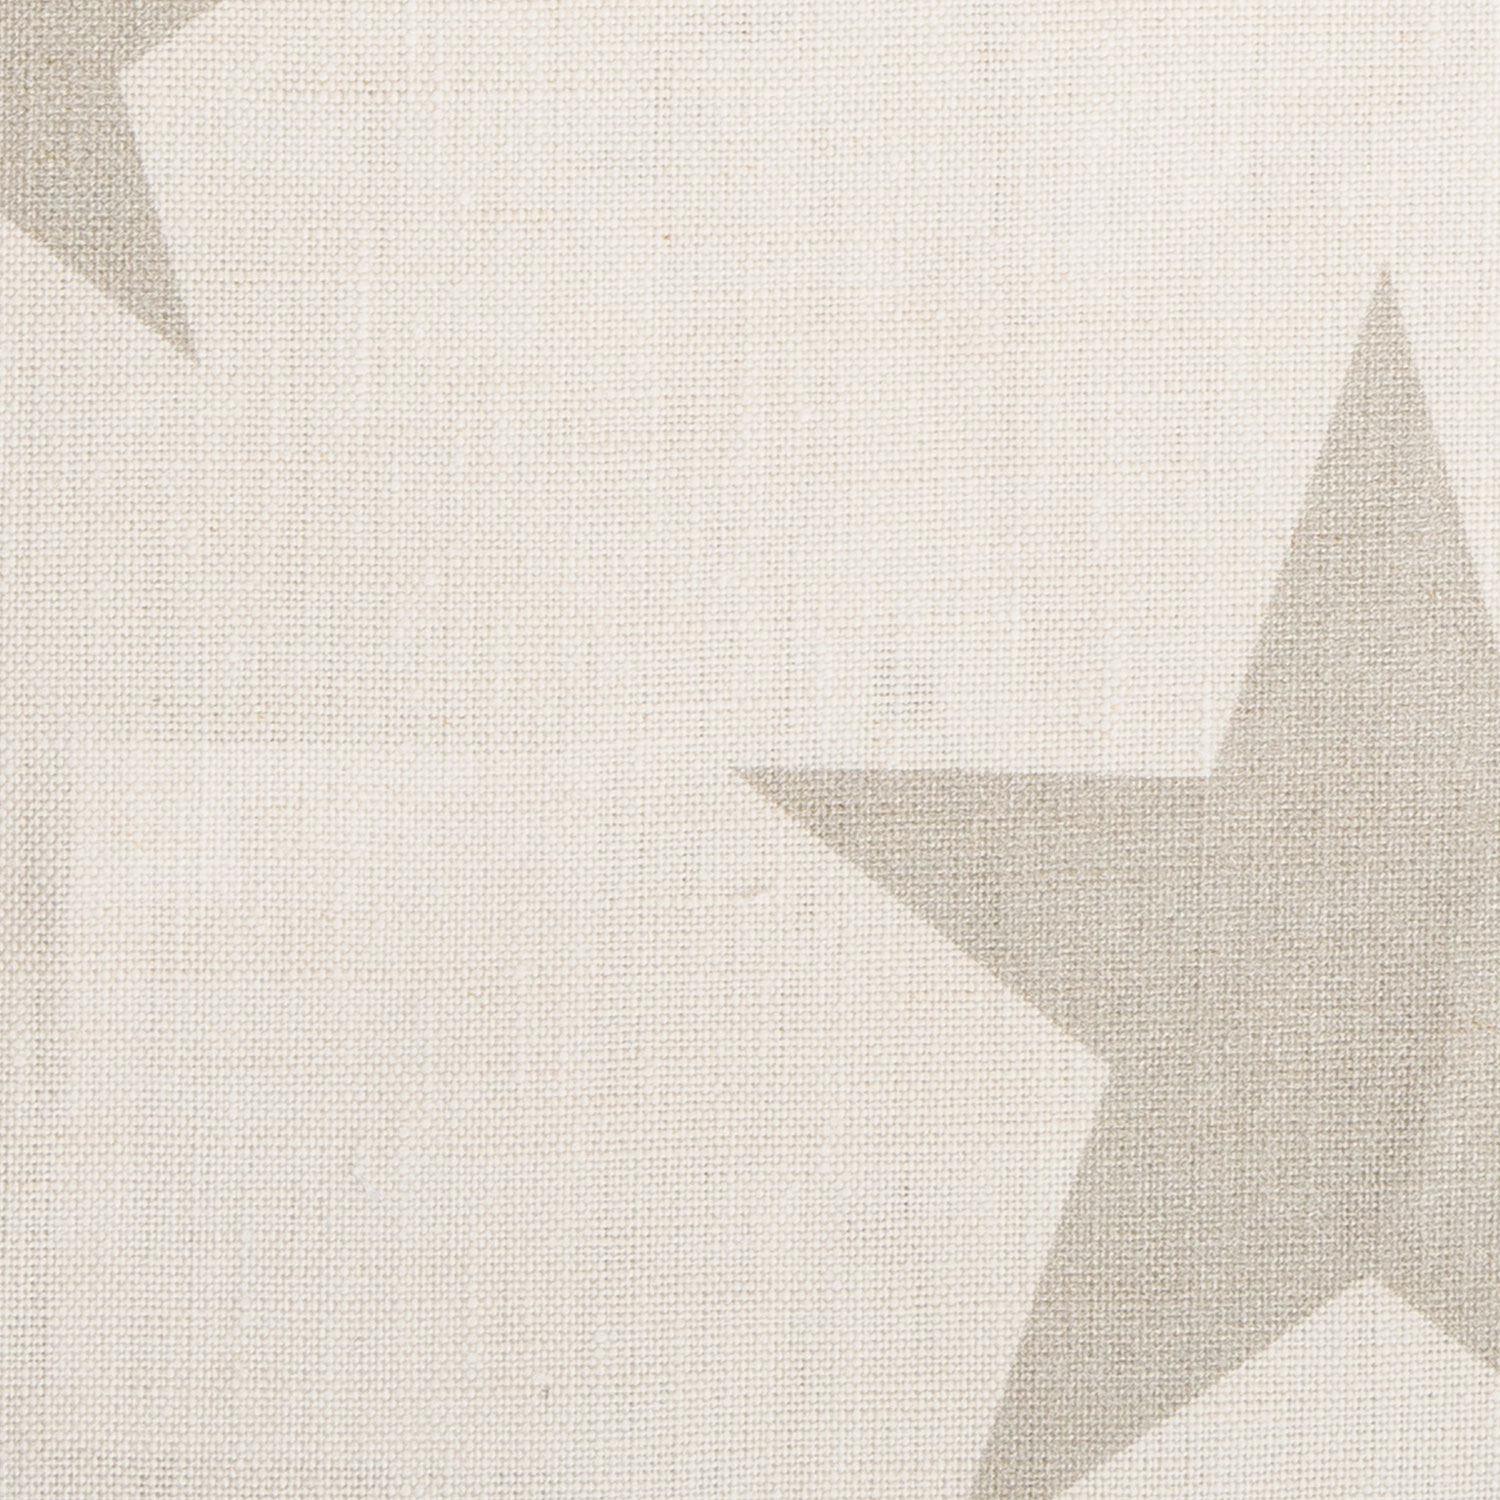 All Stars Large, Gustavian Grey on Ivory